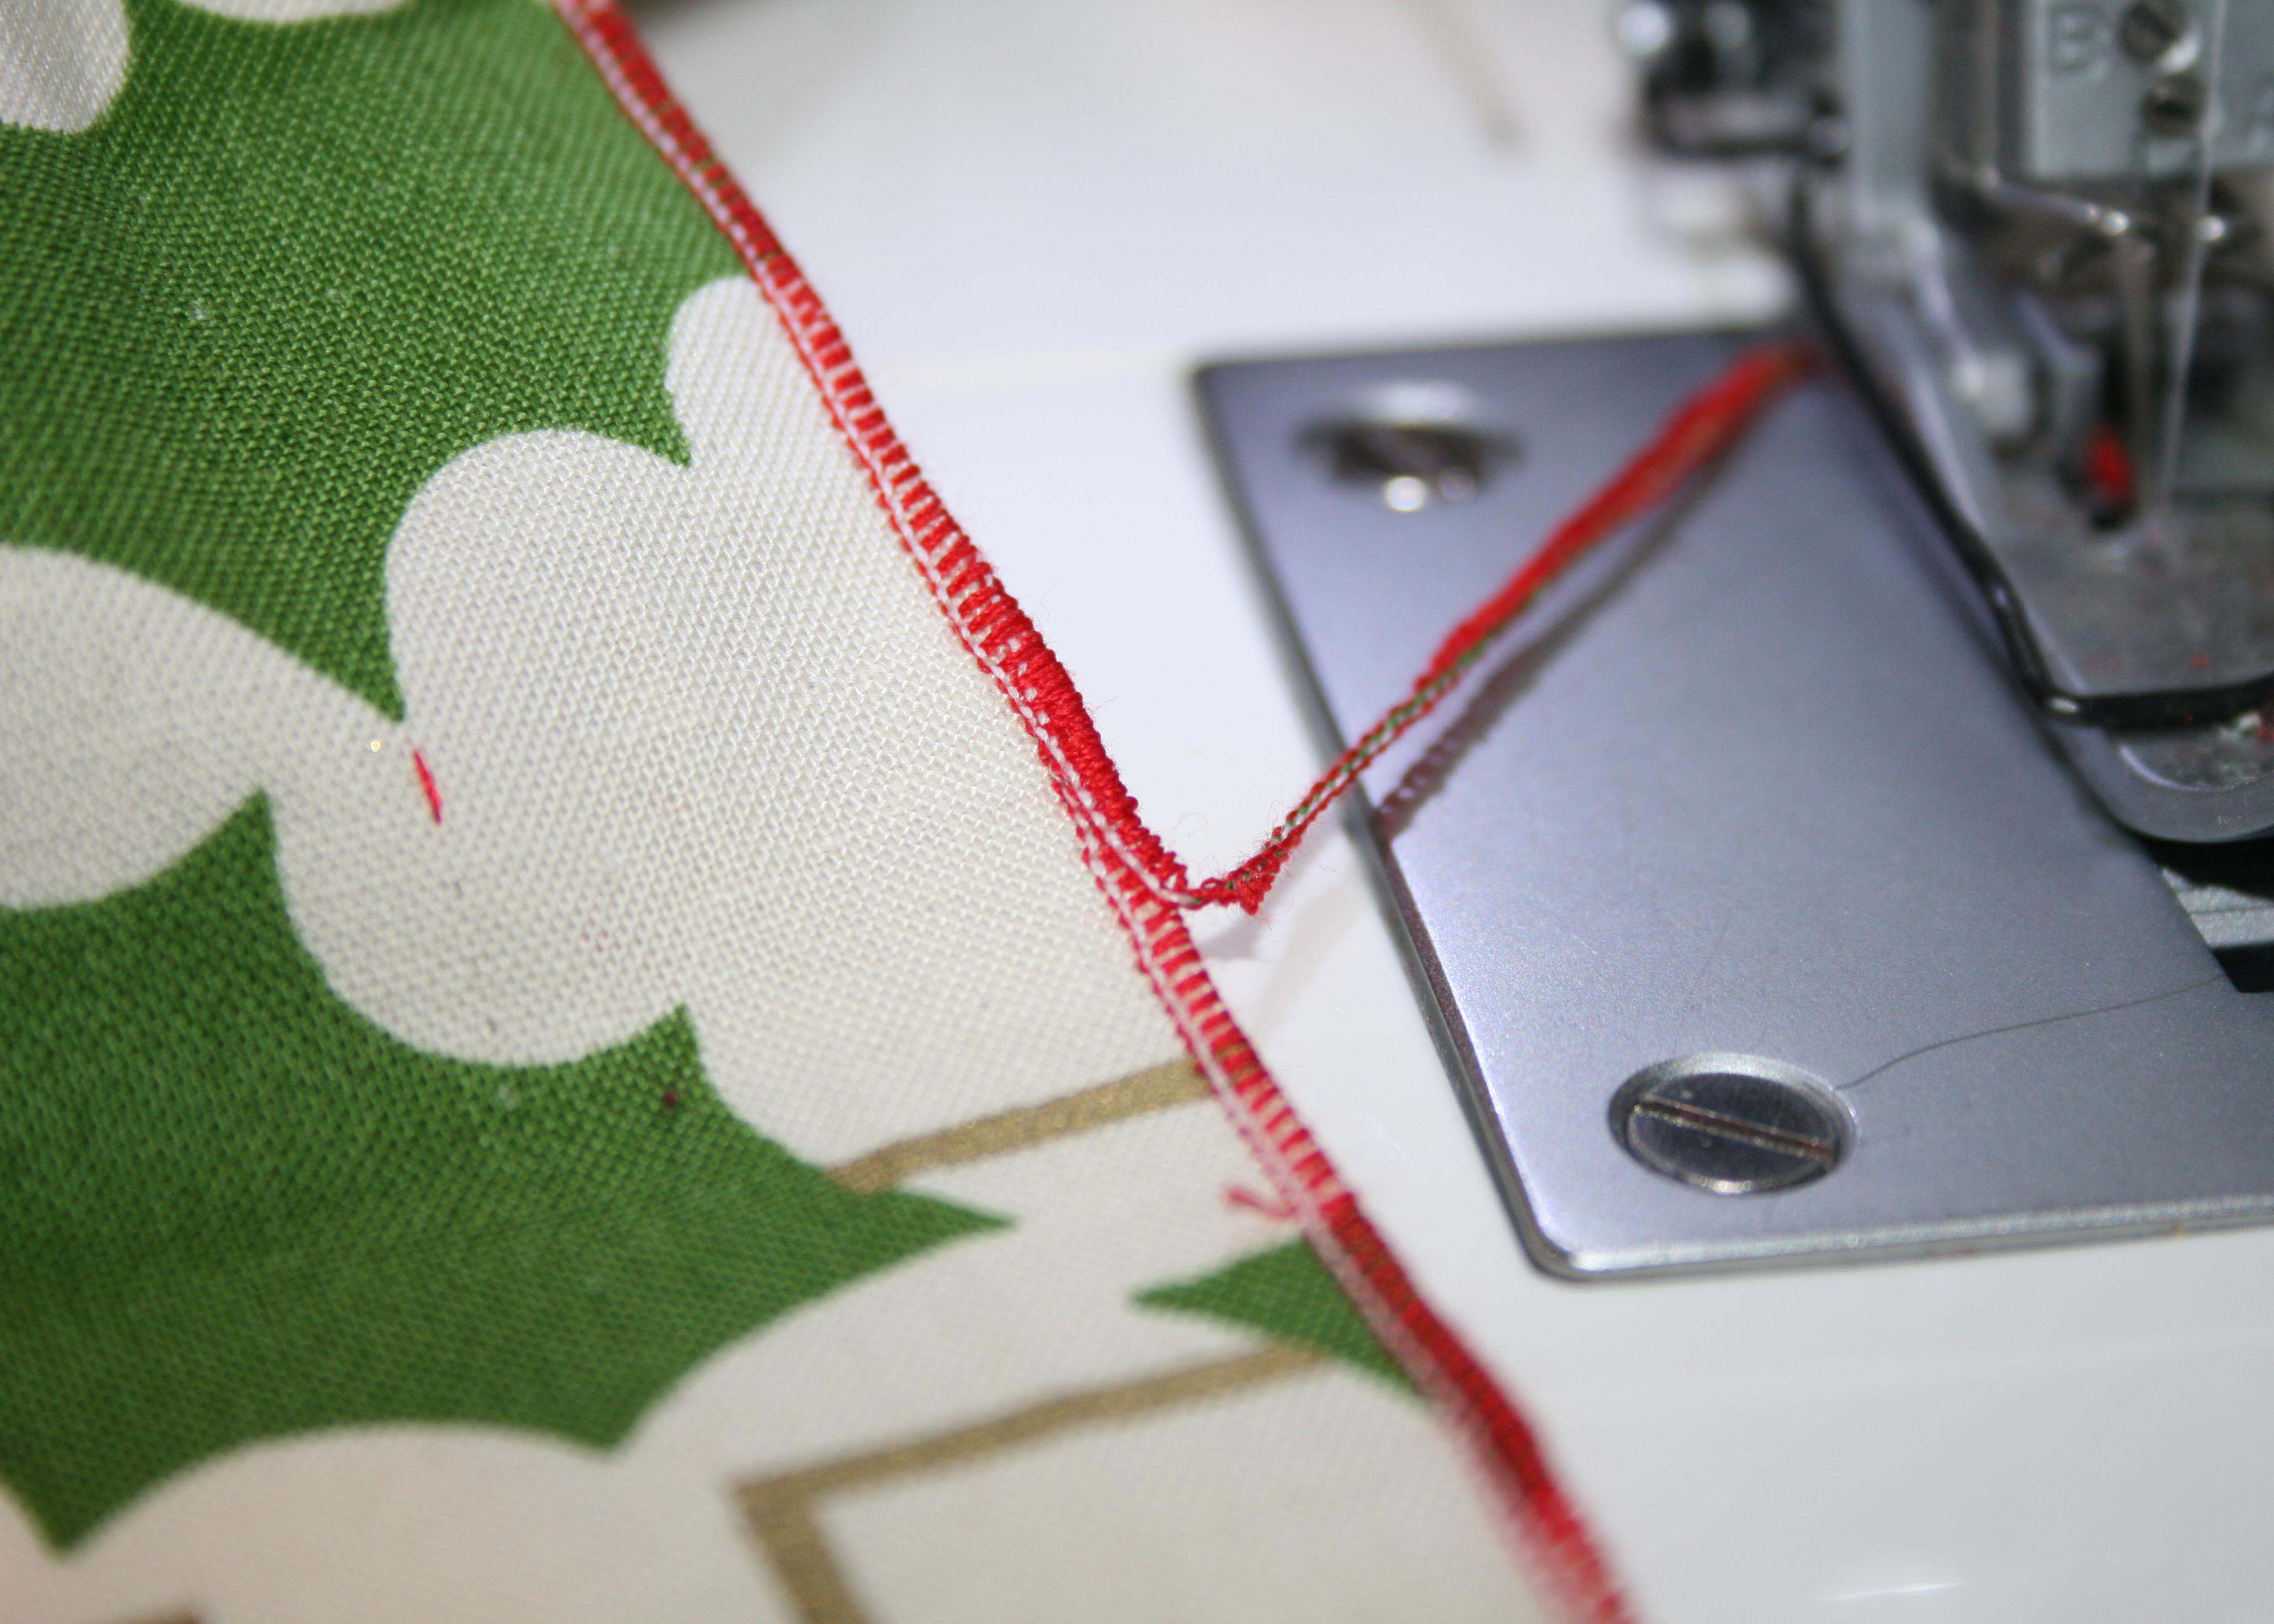 90 Second Napkins No Measuring Required Sewing Parts Online Everything Sewing Delivered Quickly To Your Door